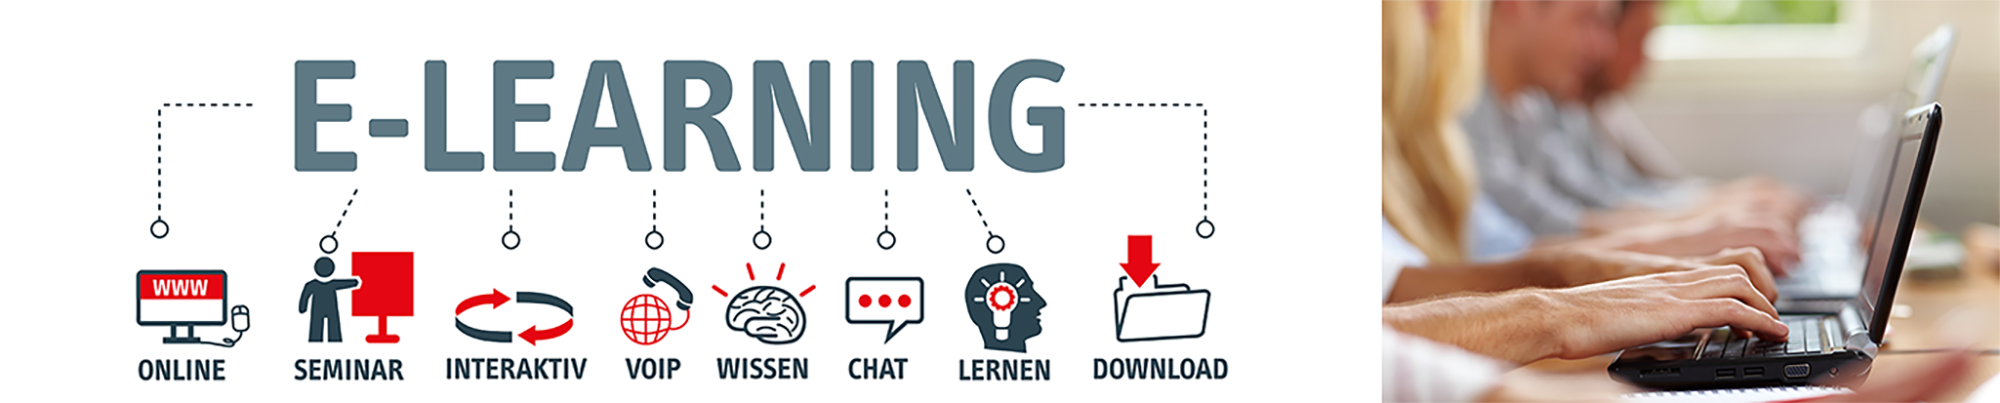 e-learning.png?1586609531970